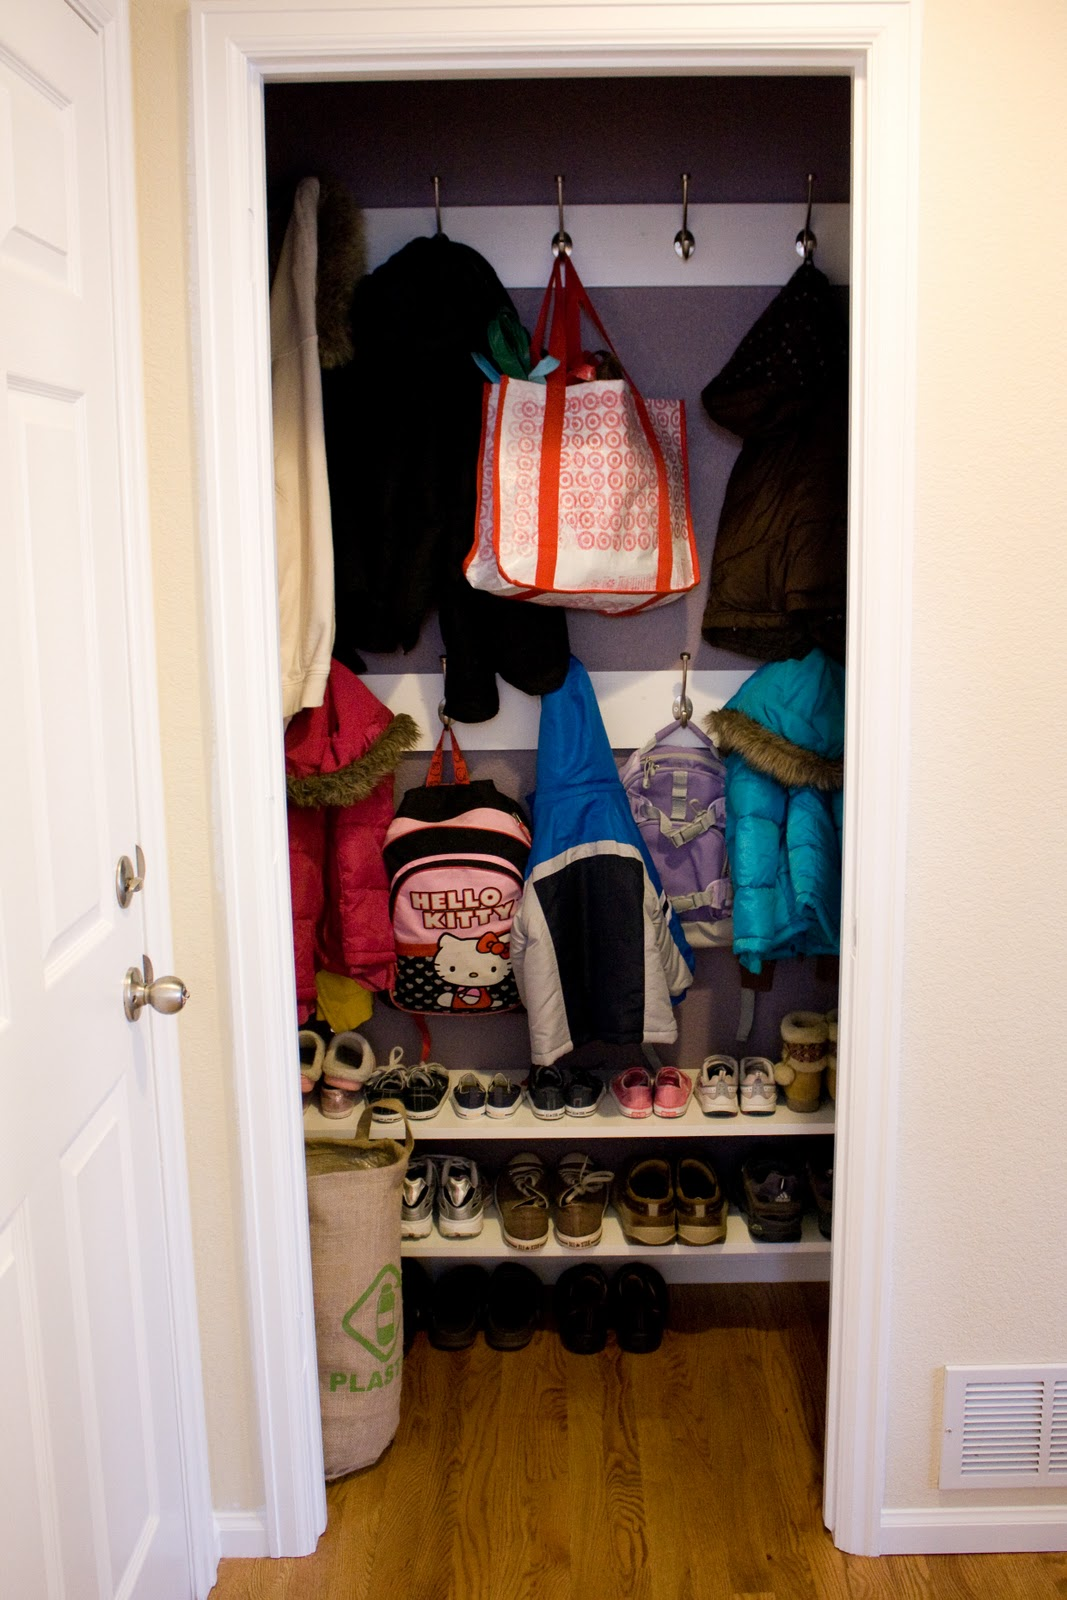 Well, As Great As A Coat Closet Can Serve As A Mudroom For A Family Of 6;).